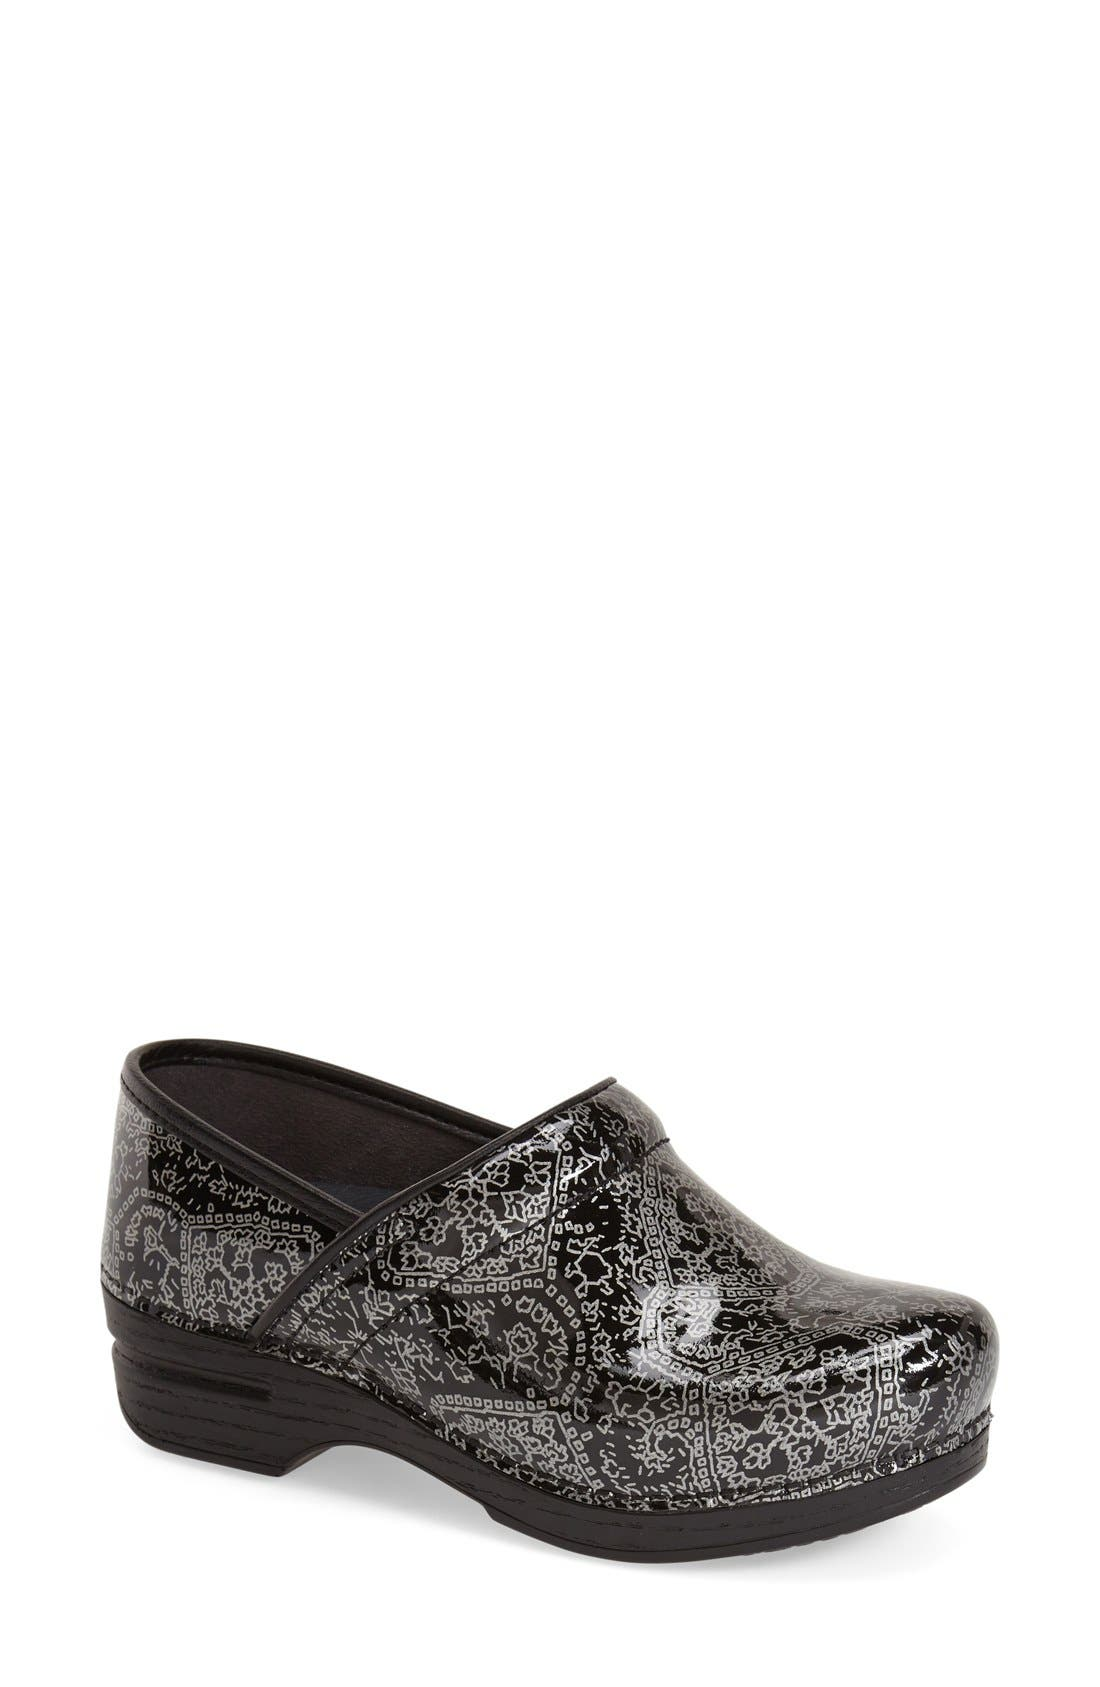 DANSKO 'Pro XP' Metallic Medallion Print Clog